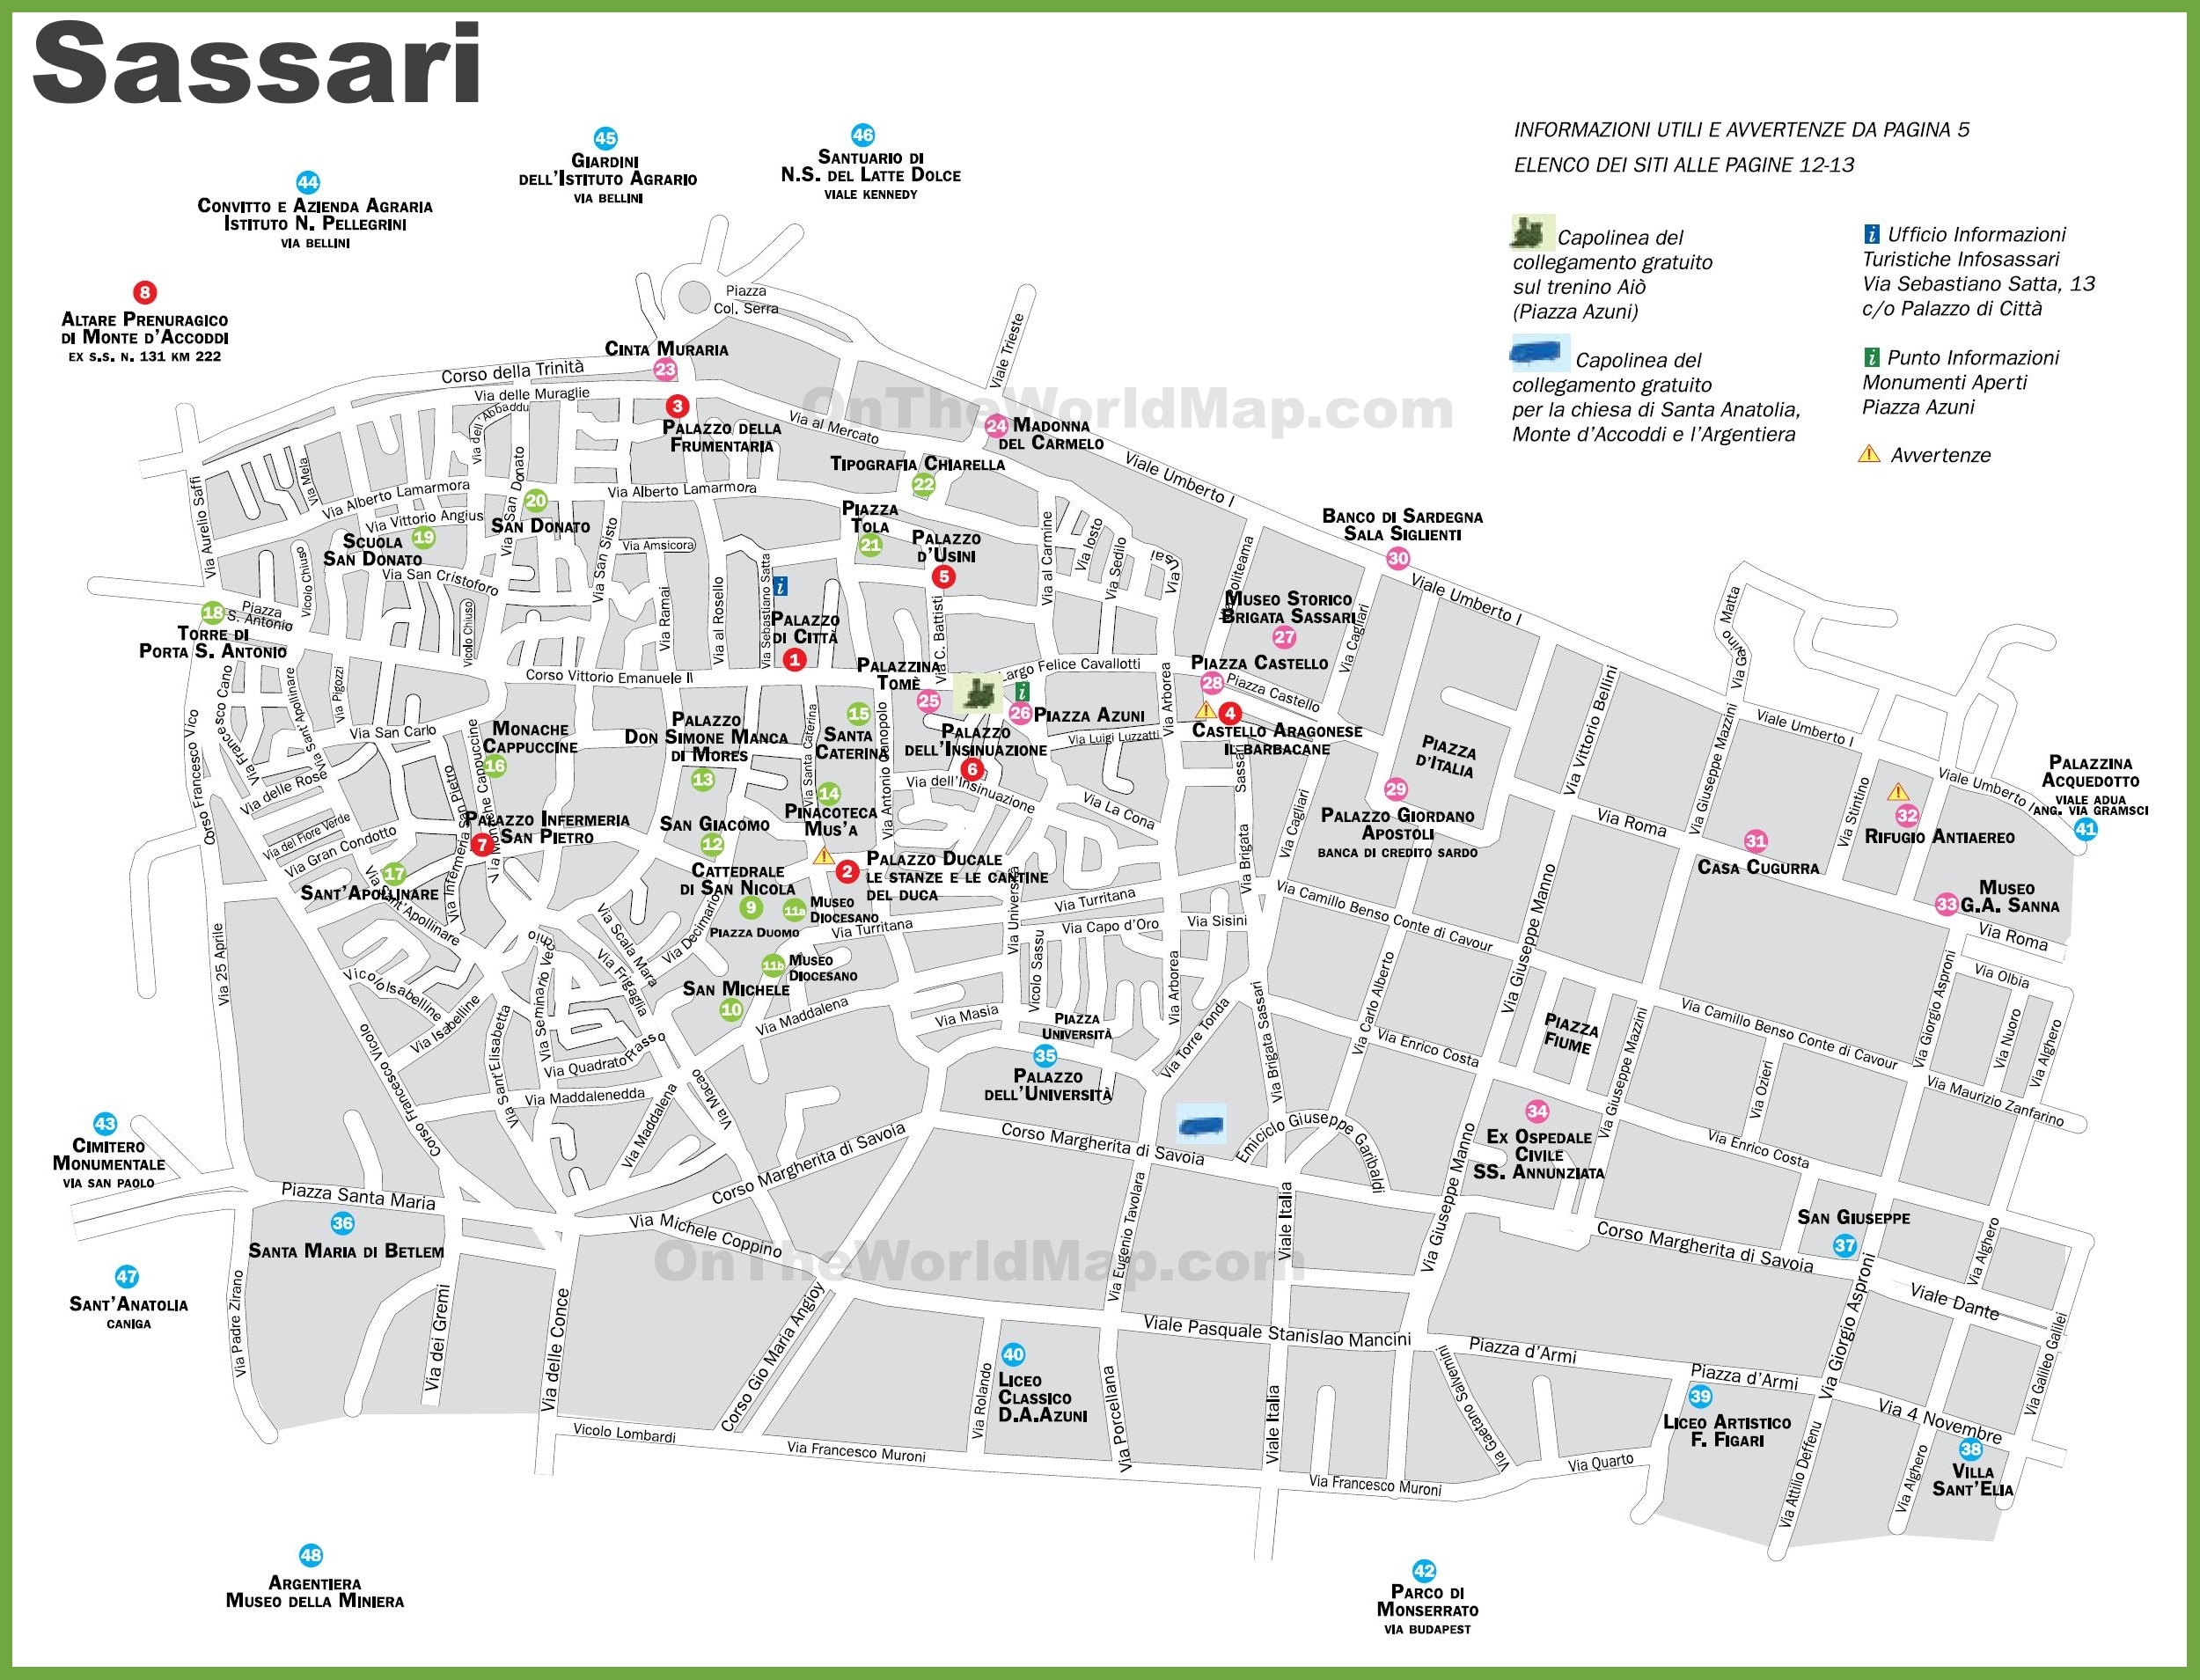 Sassari tourist map